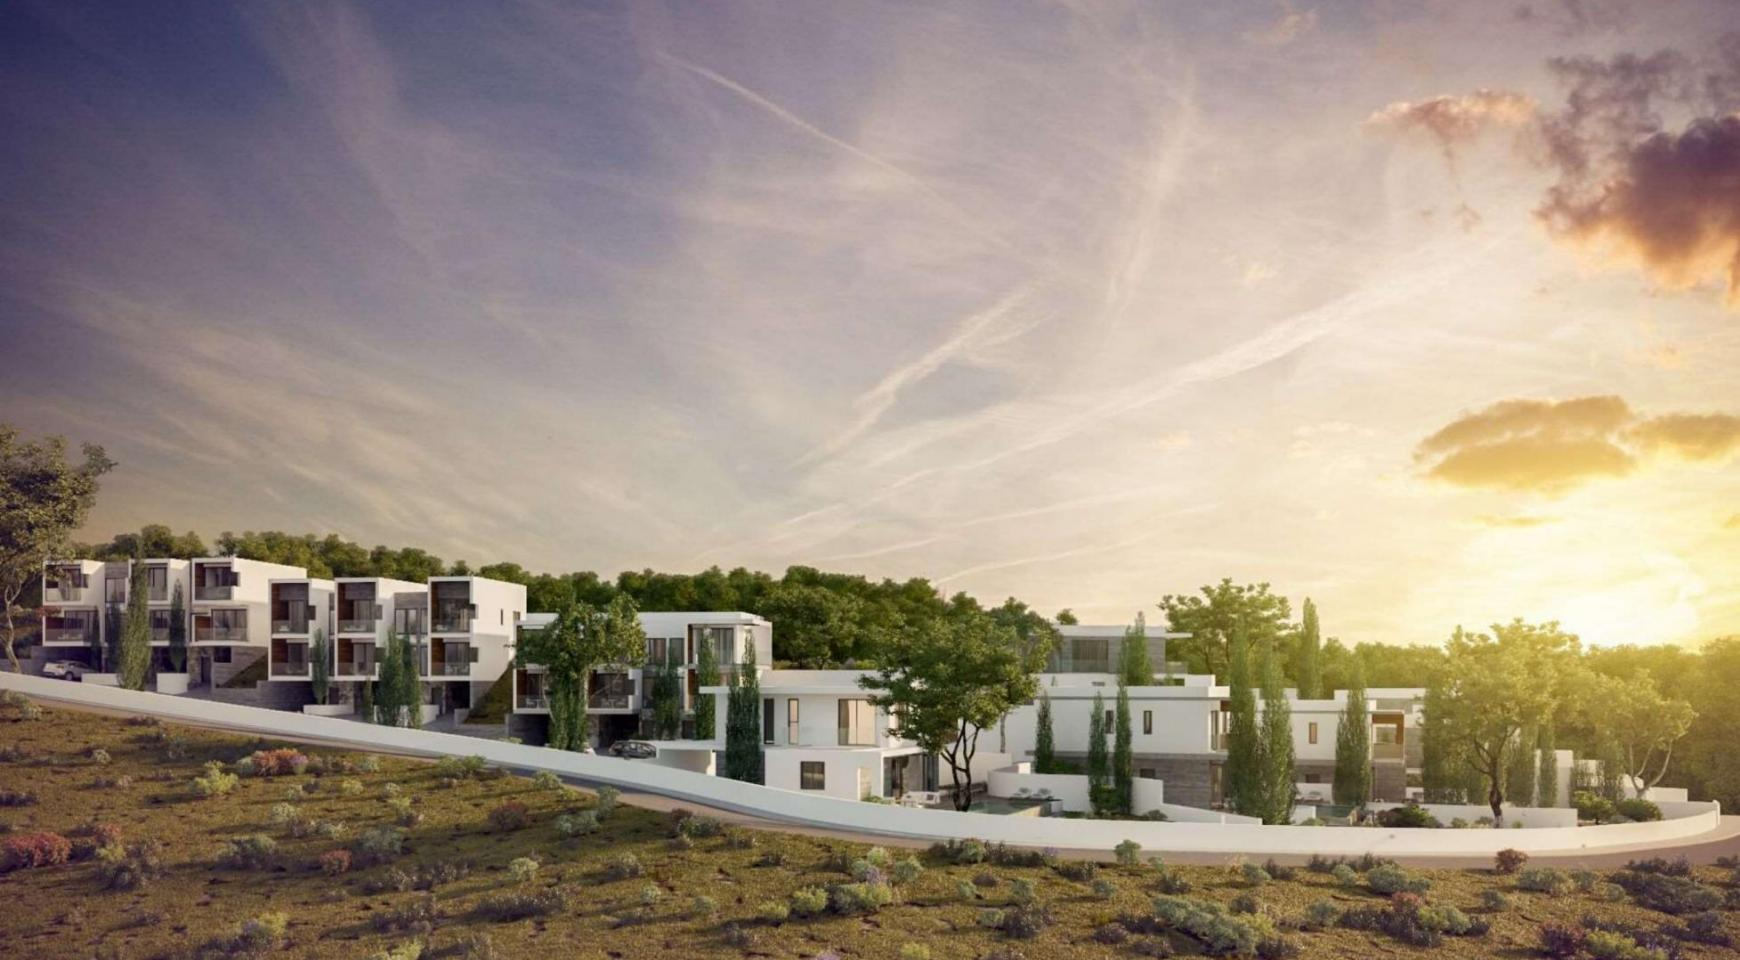 4 Bedroom Villa within a New Project in Agios Tychonas Area - 8